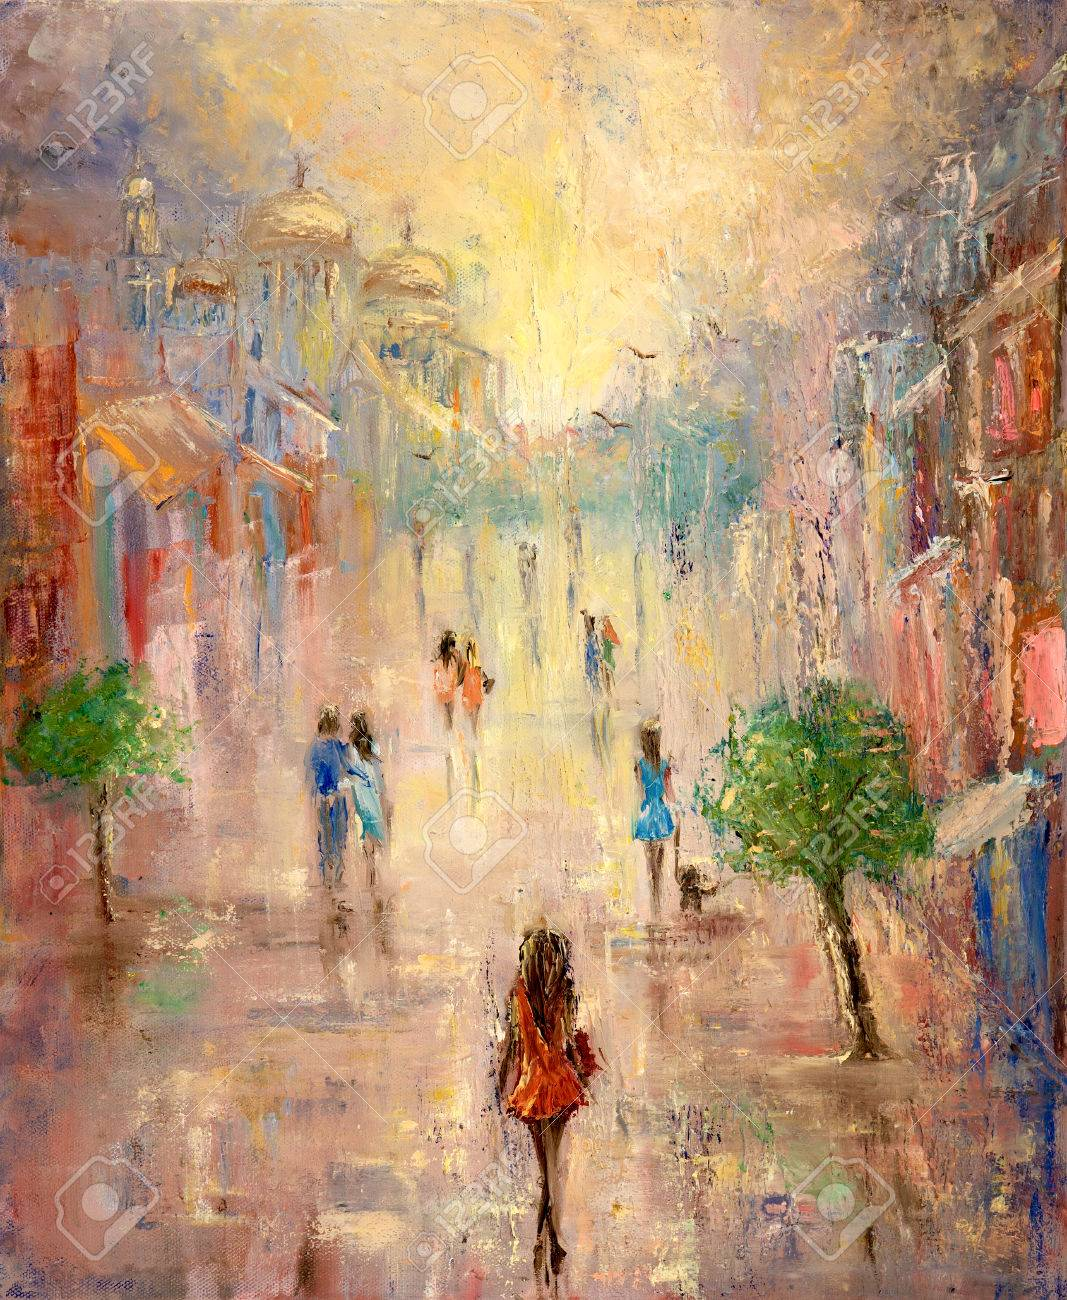 Abstract Painting Of People Having A Walk On City Street On Canvas Modern